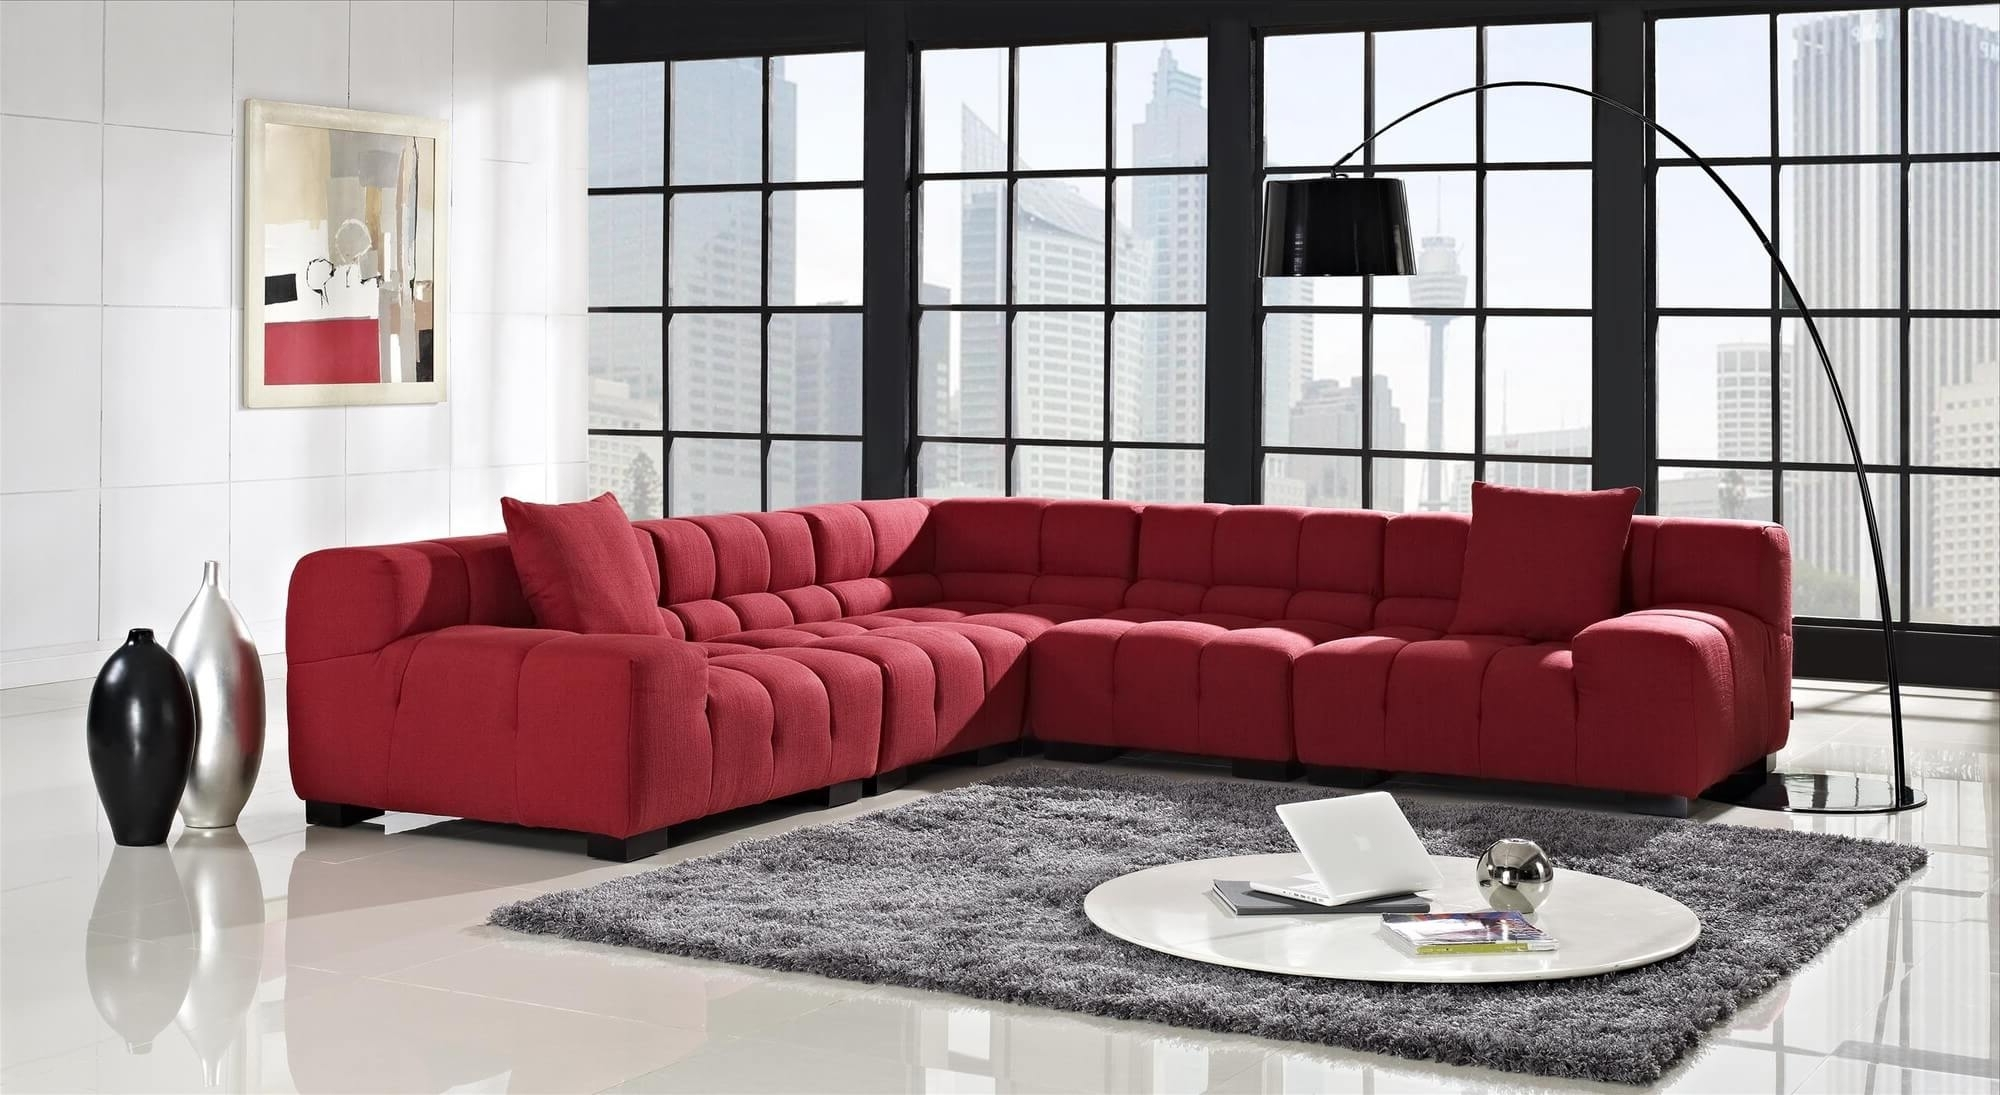 Current Ethan Allen Charlotte Nc Modern Italian Leather Sofa Ethan Allen Pertaining To Charlotte Sectional Sofas (View 11 of 20)